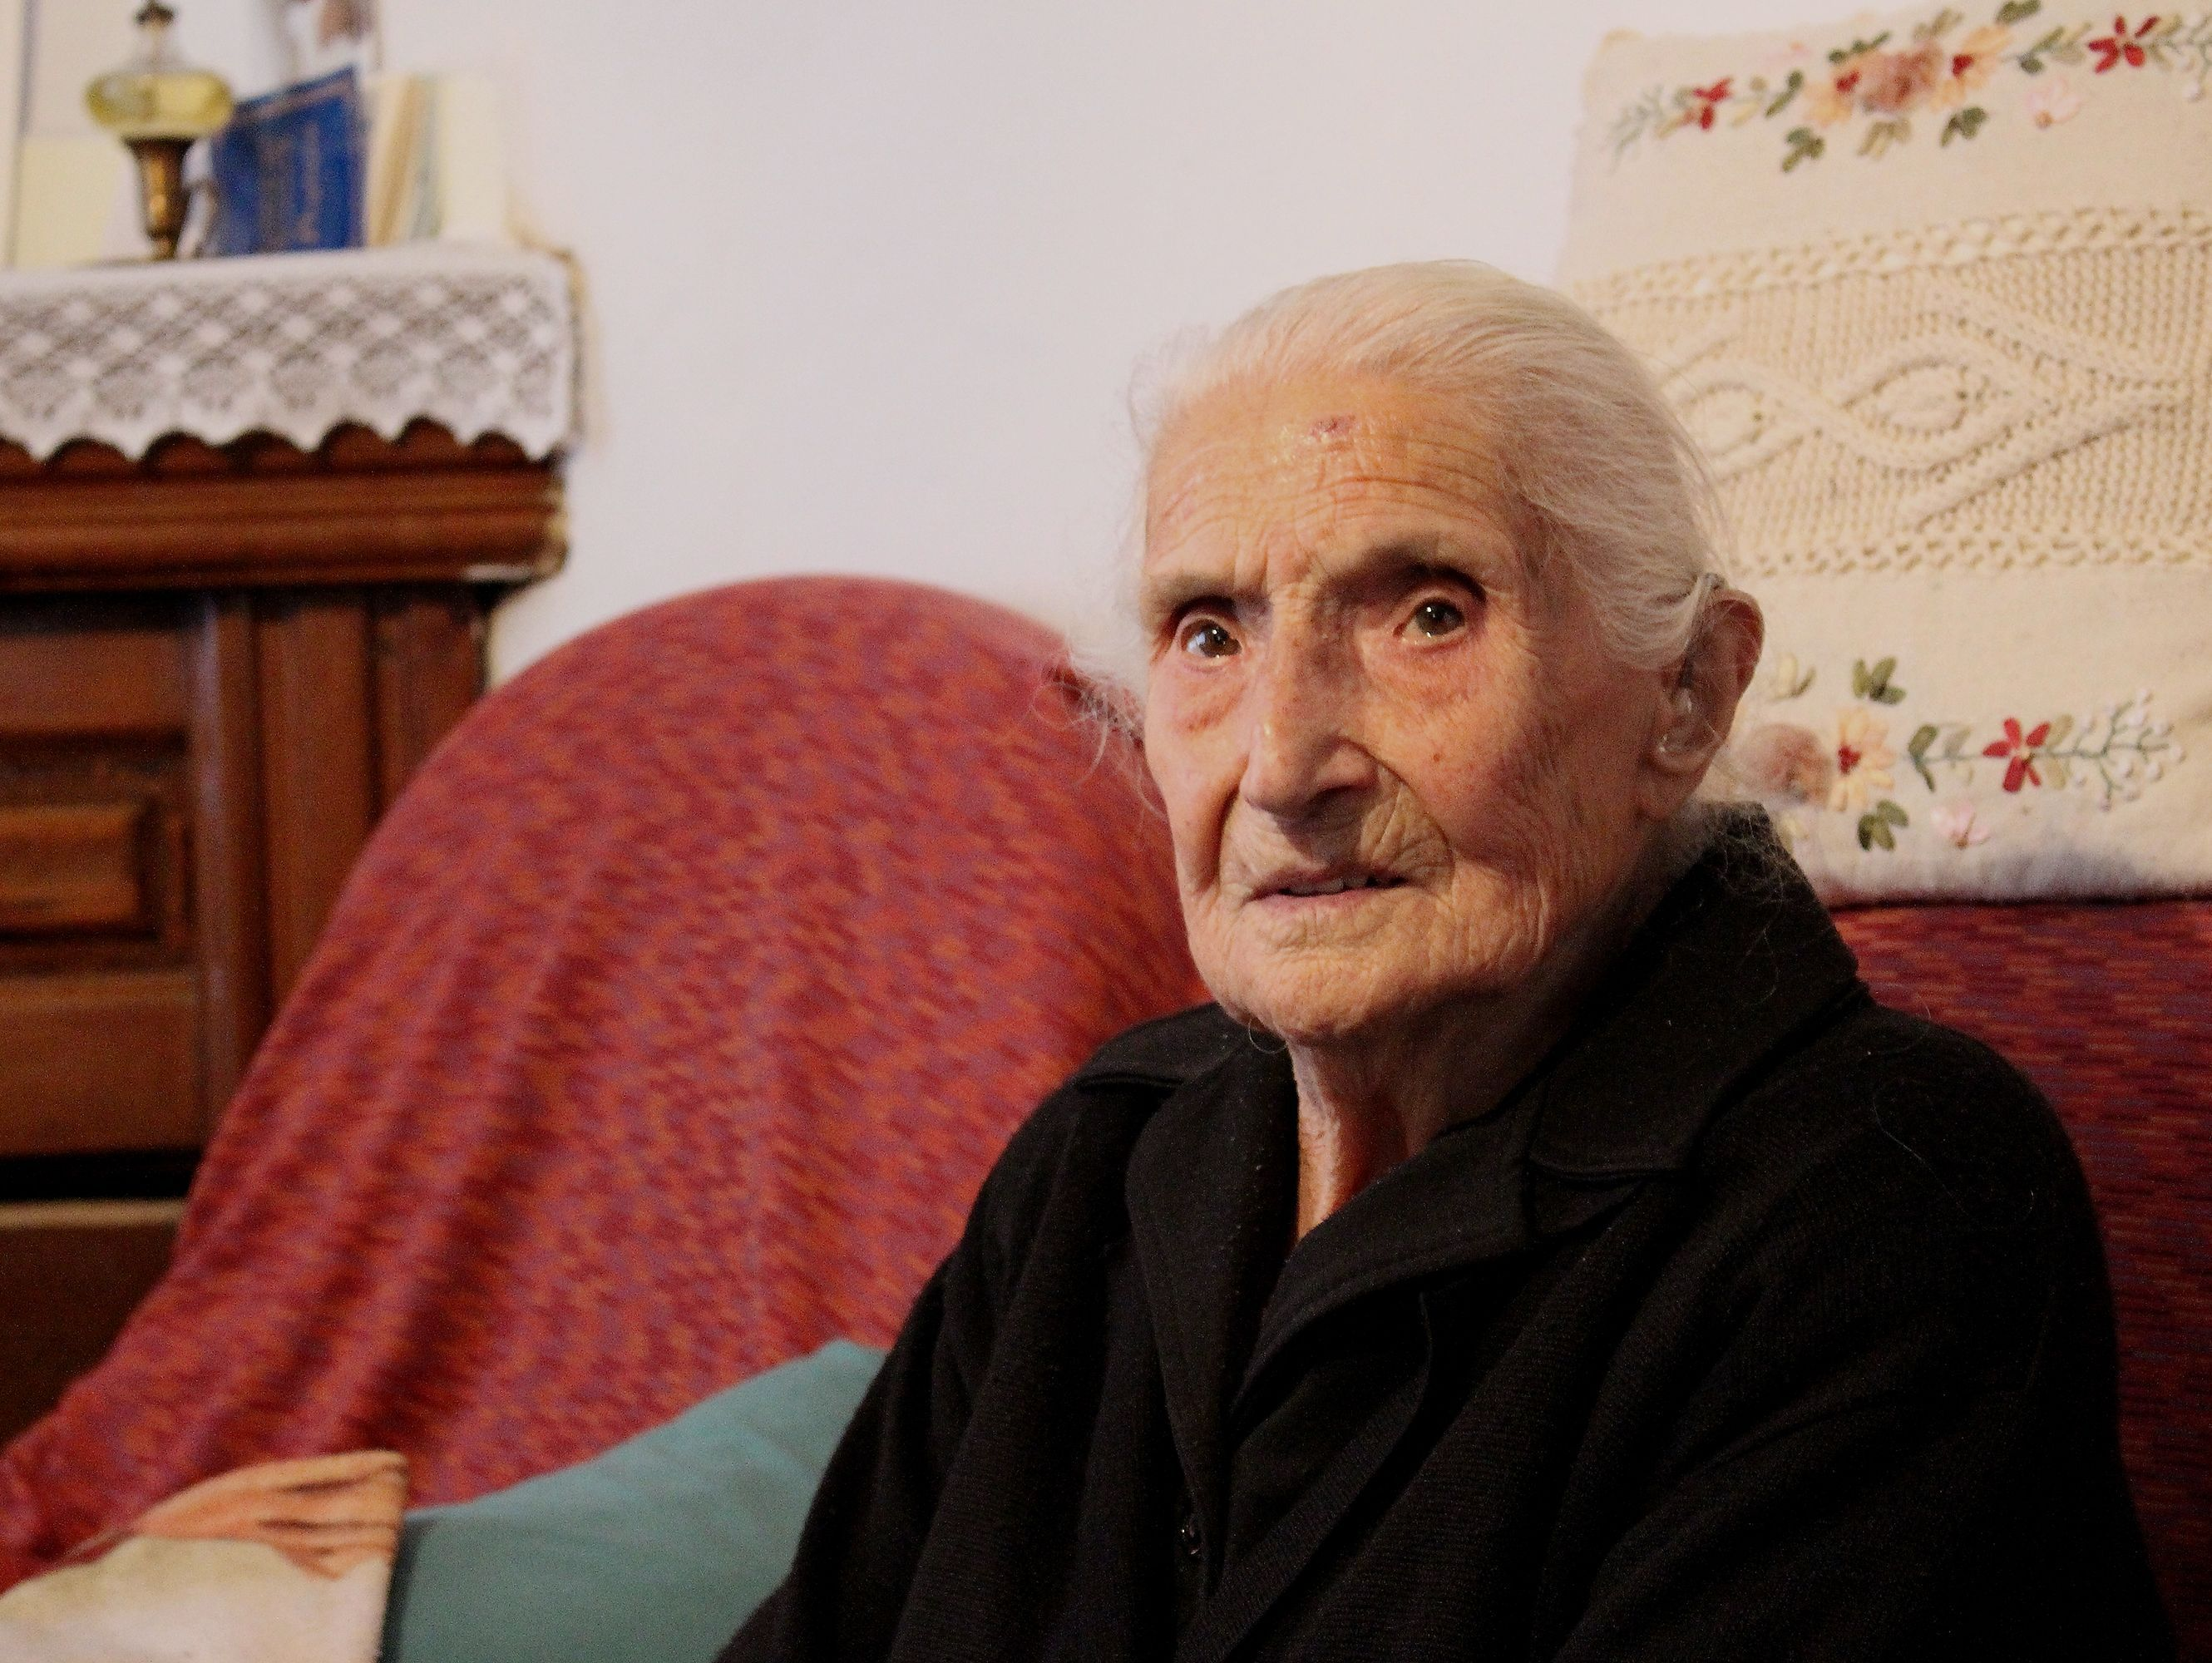 The oldest people in the world